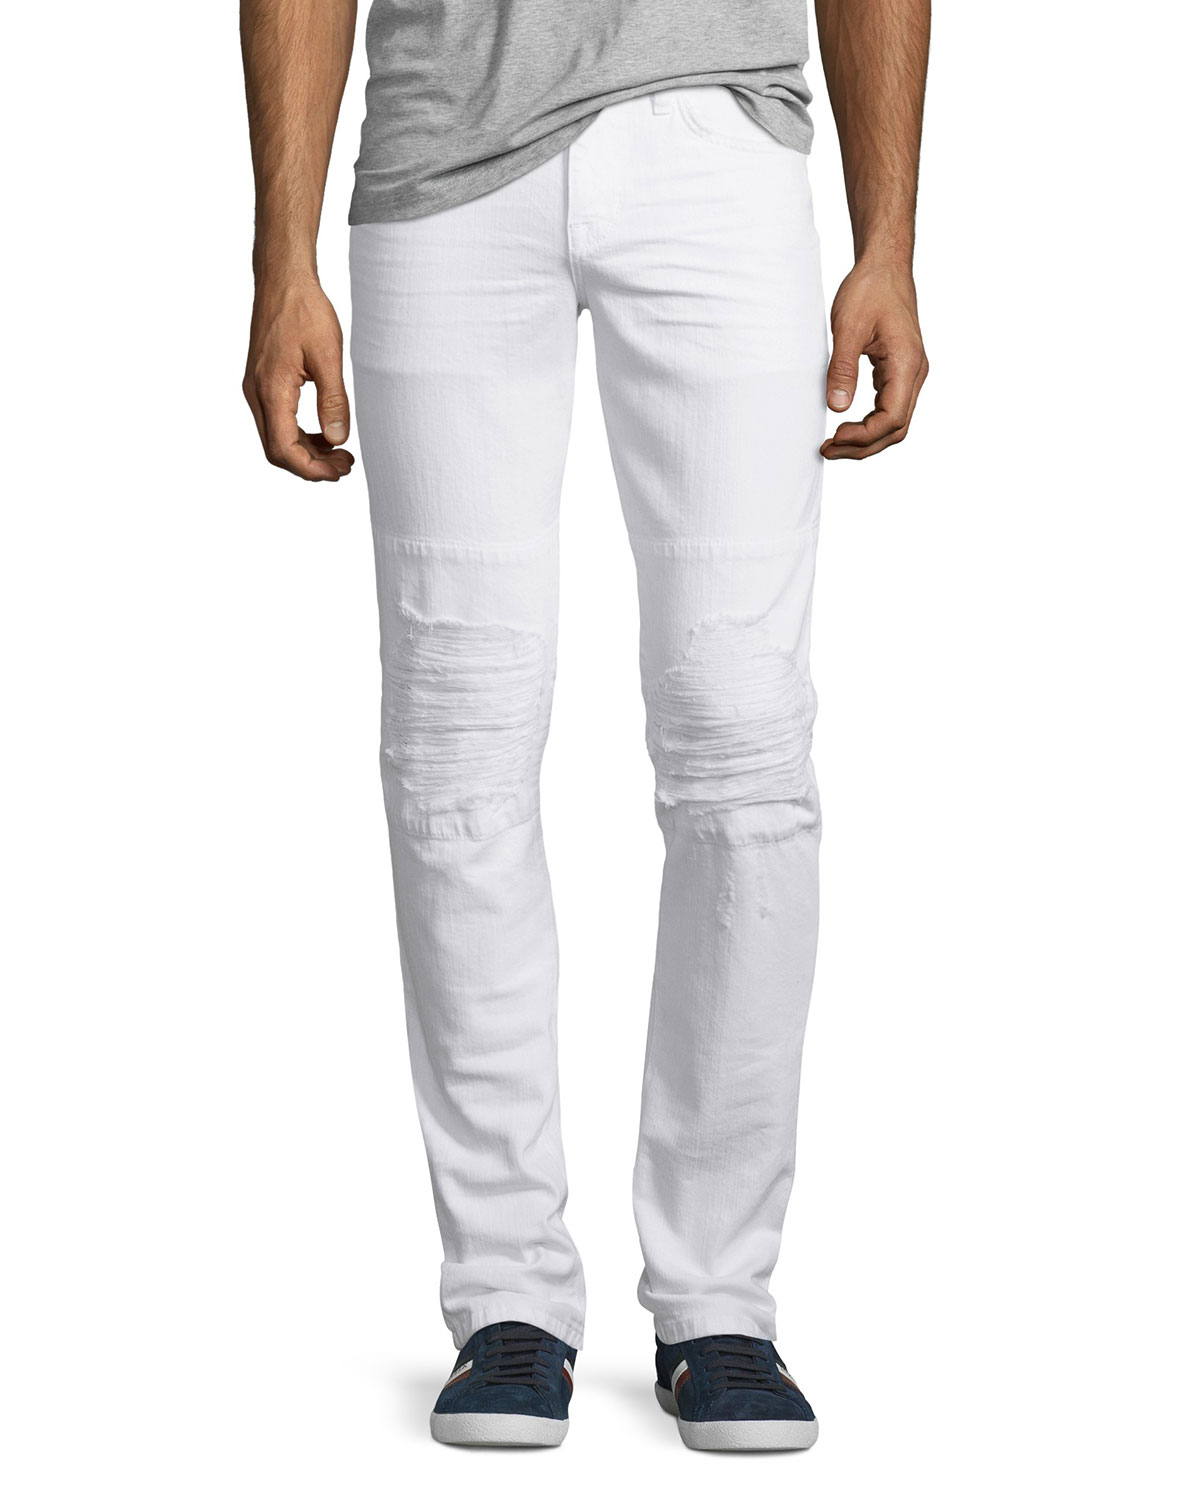 Joeu0026#39;s Jeans Slim-fit Distressed Jean In White For Men | Lyst